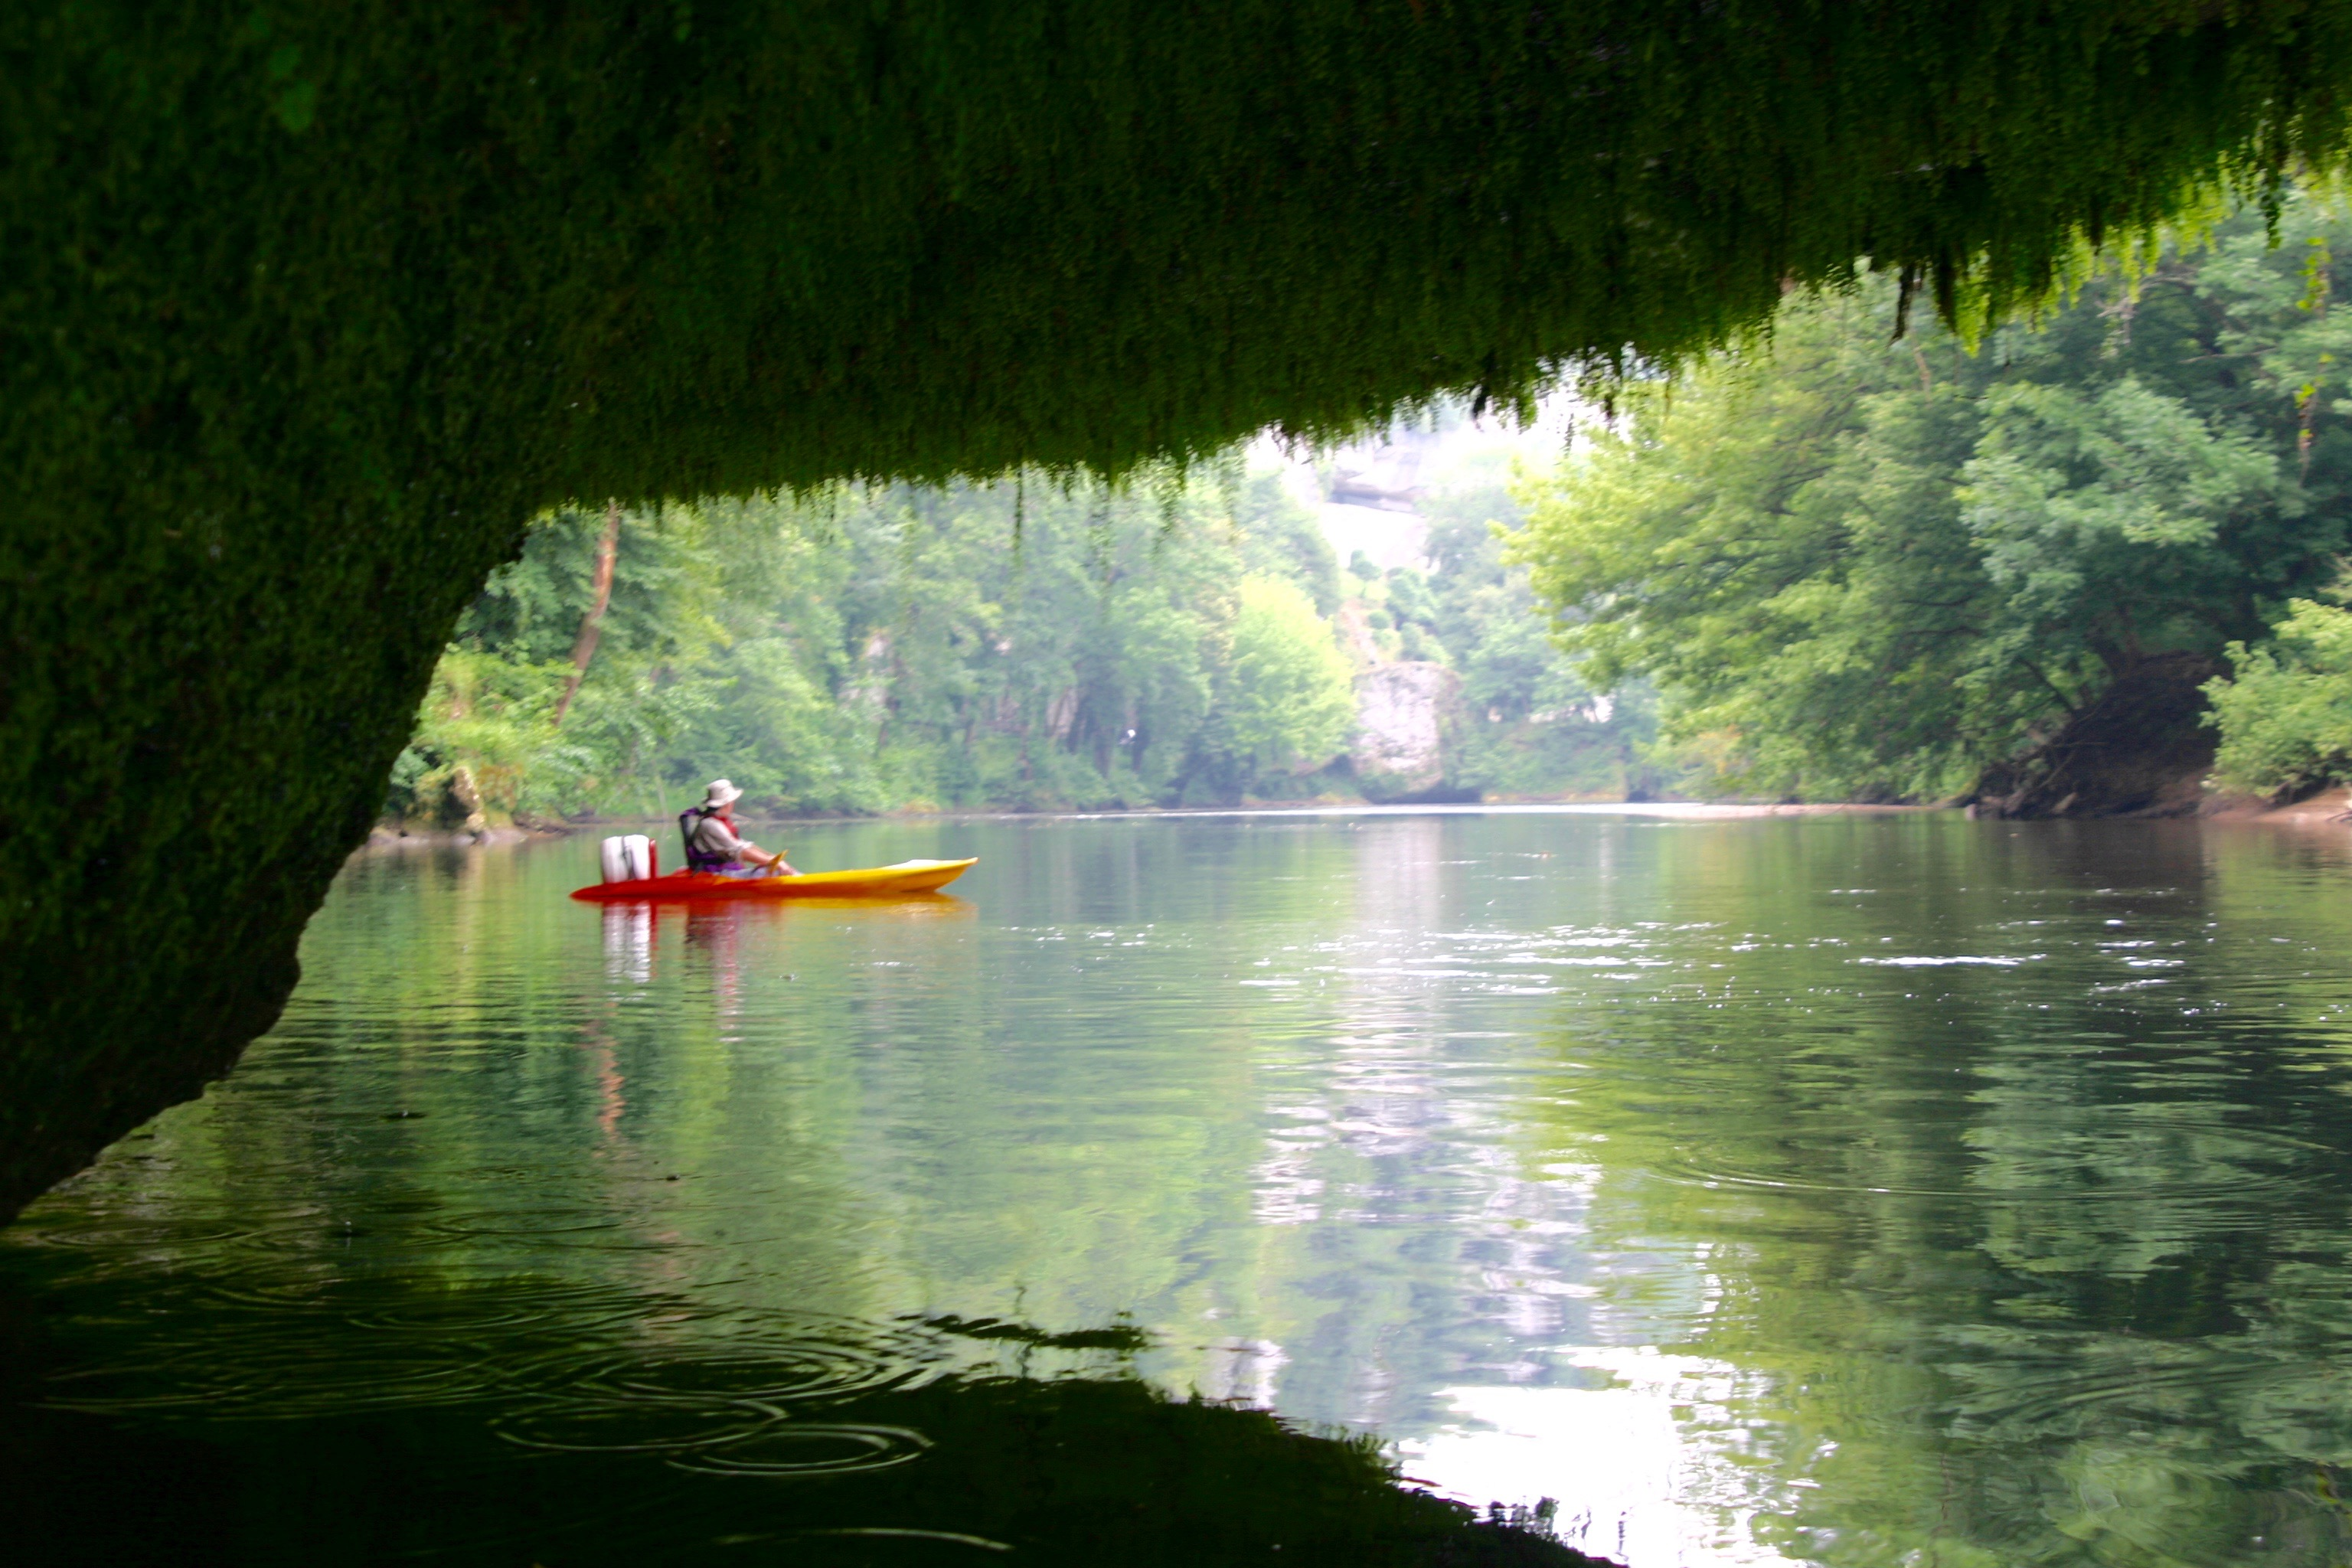 Canoeing on the Vezere River